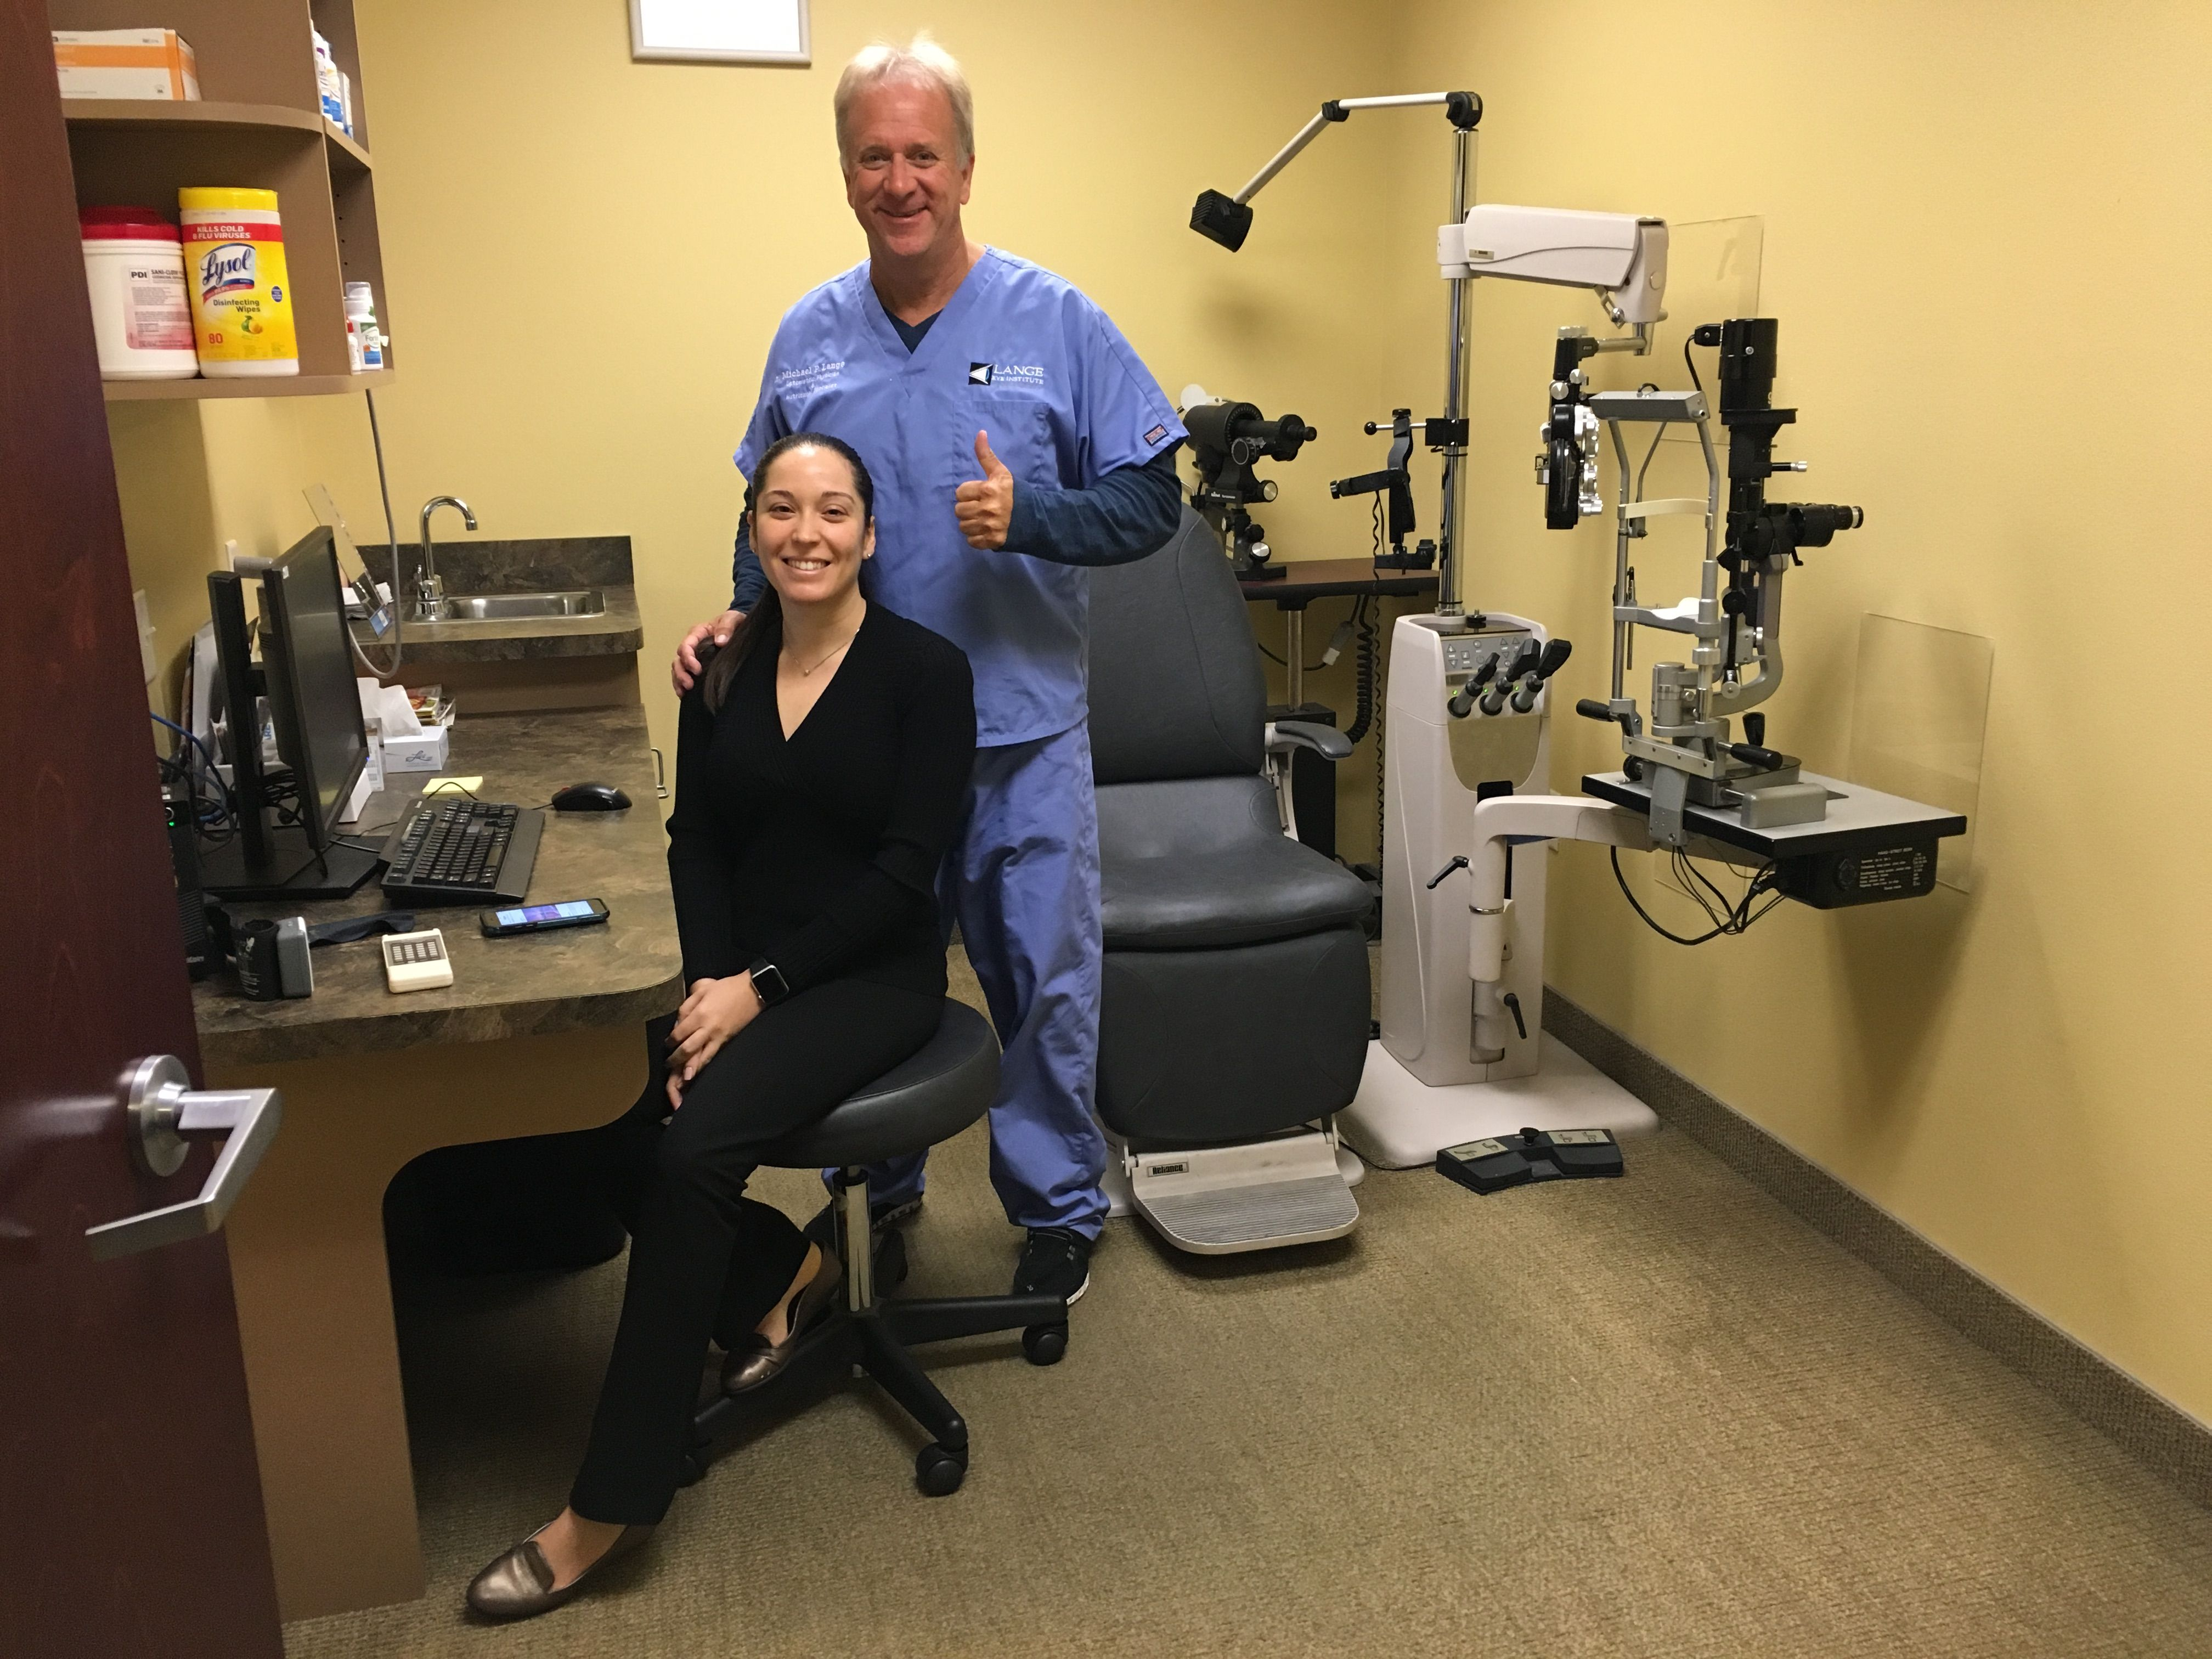 Dr Michael Lange And Dr Yaidy Exposito At The Lange Eye Institute In